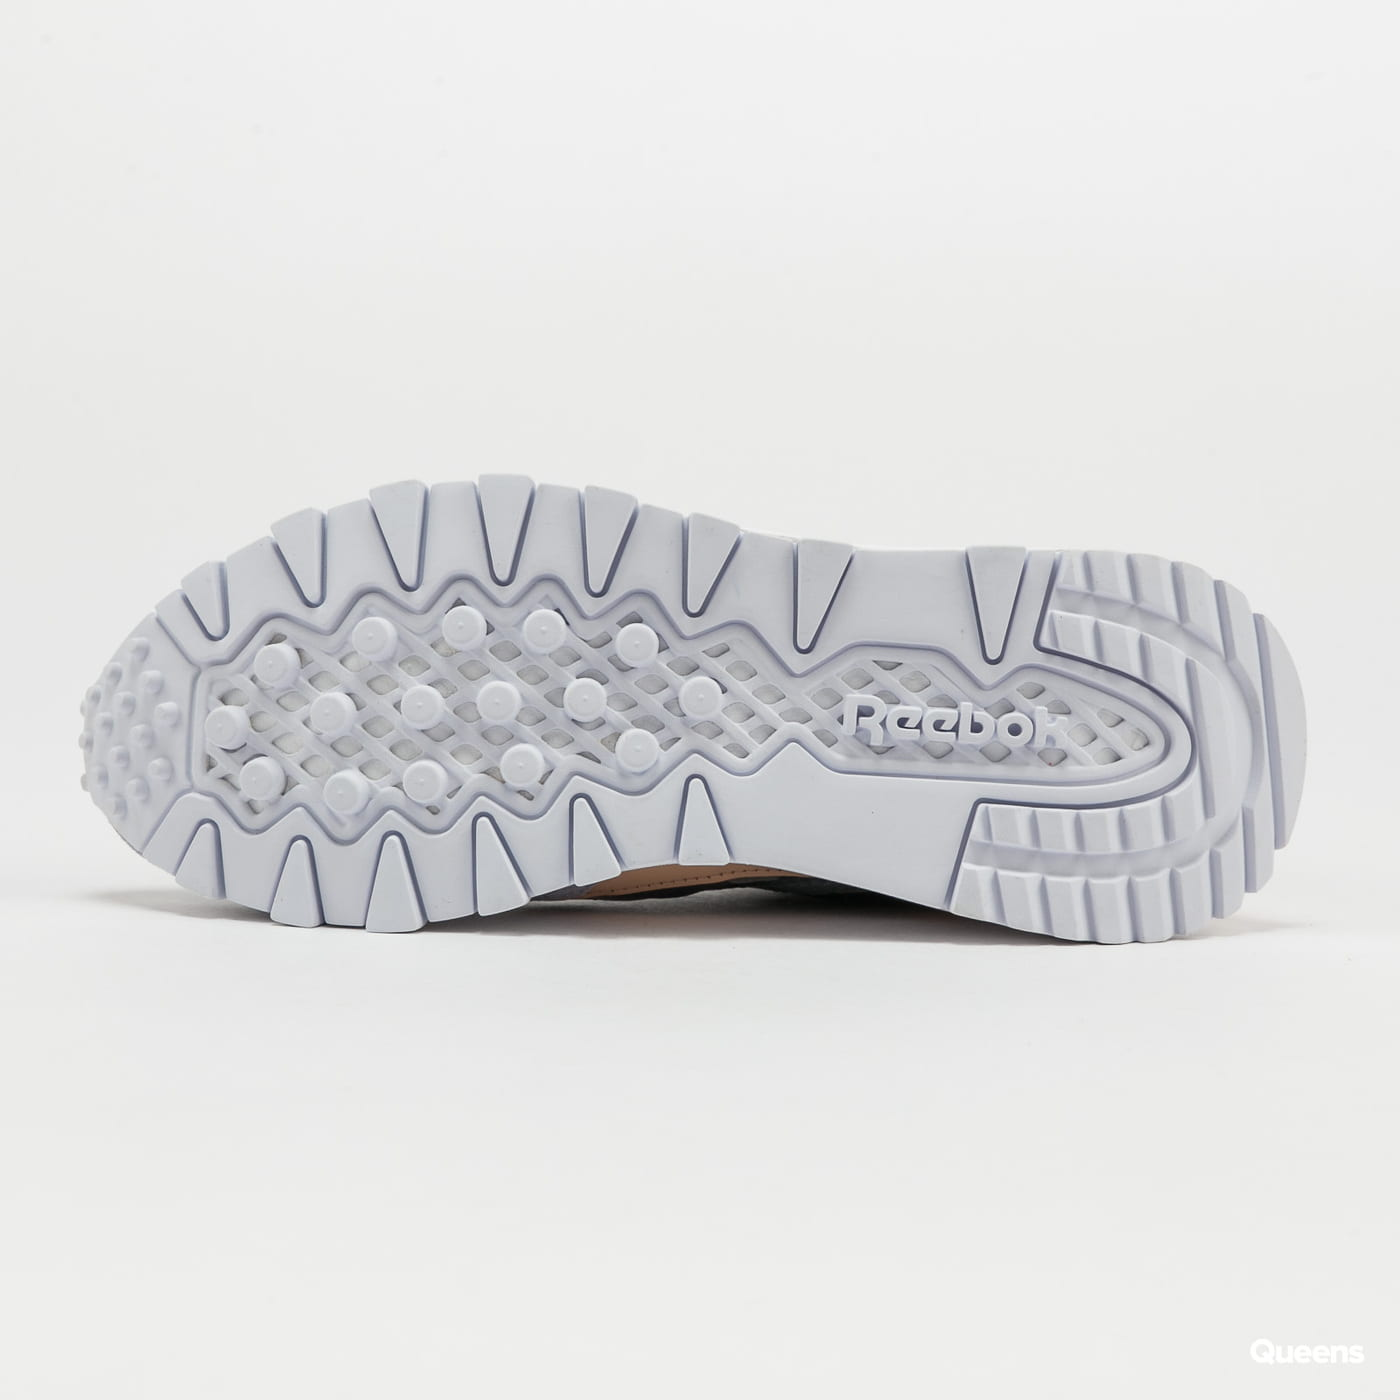 Reebok Classic Legacy cdgry2 / ftwwht / cdgry4